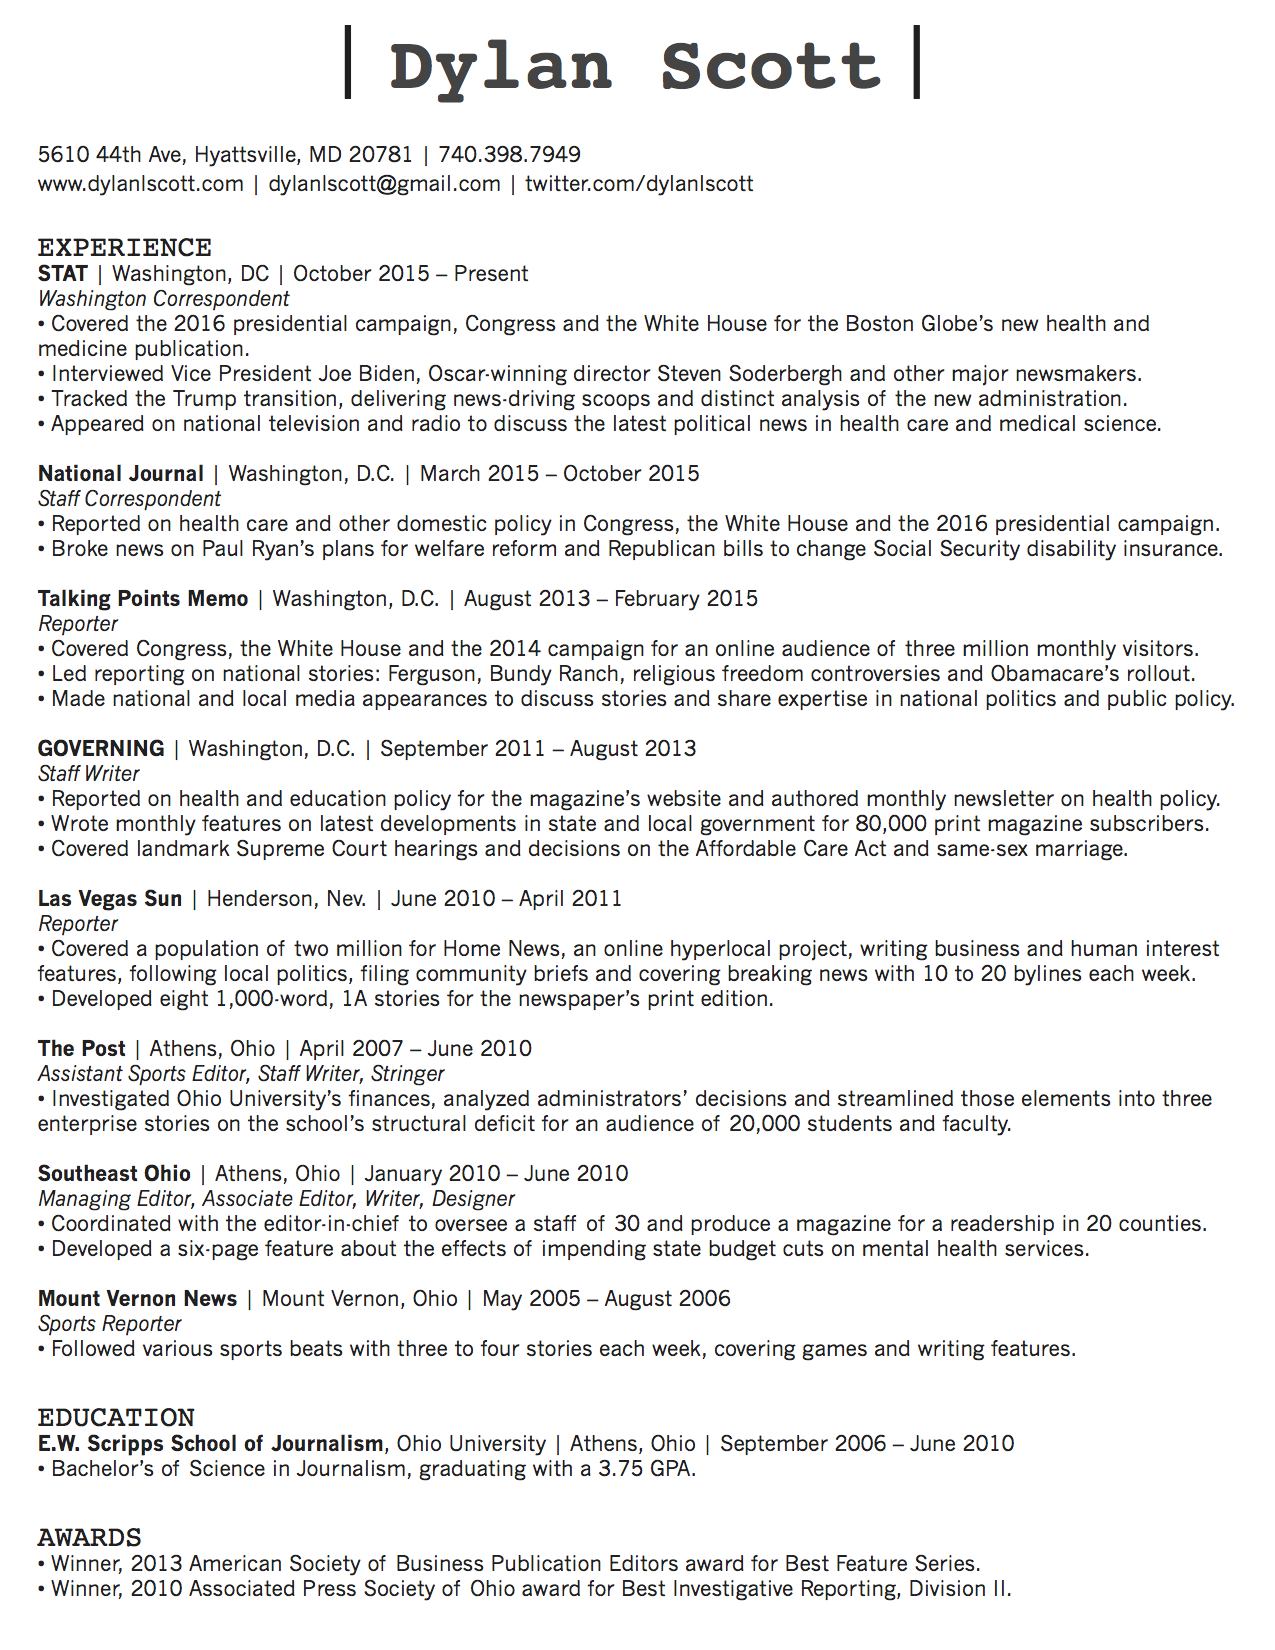 Public policy cover letter awesome sample cover letter for cover letter for resume journalism cover letter example for customer service engineer cover letter public madrichimfo Gallery